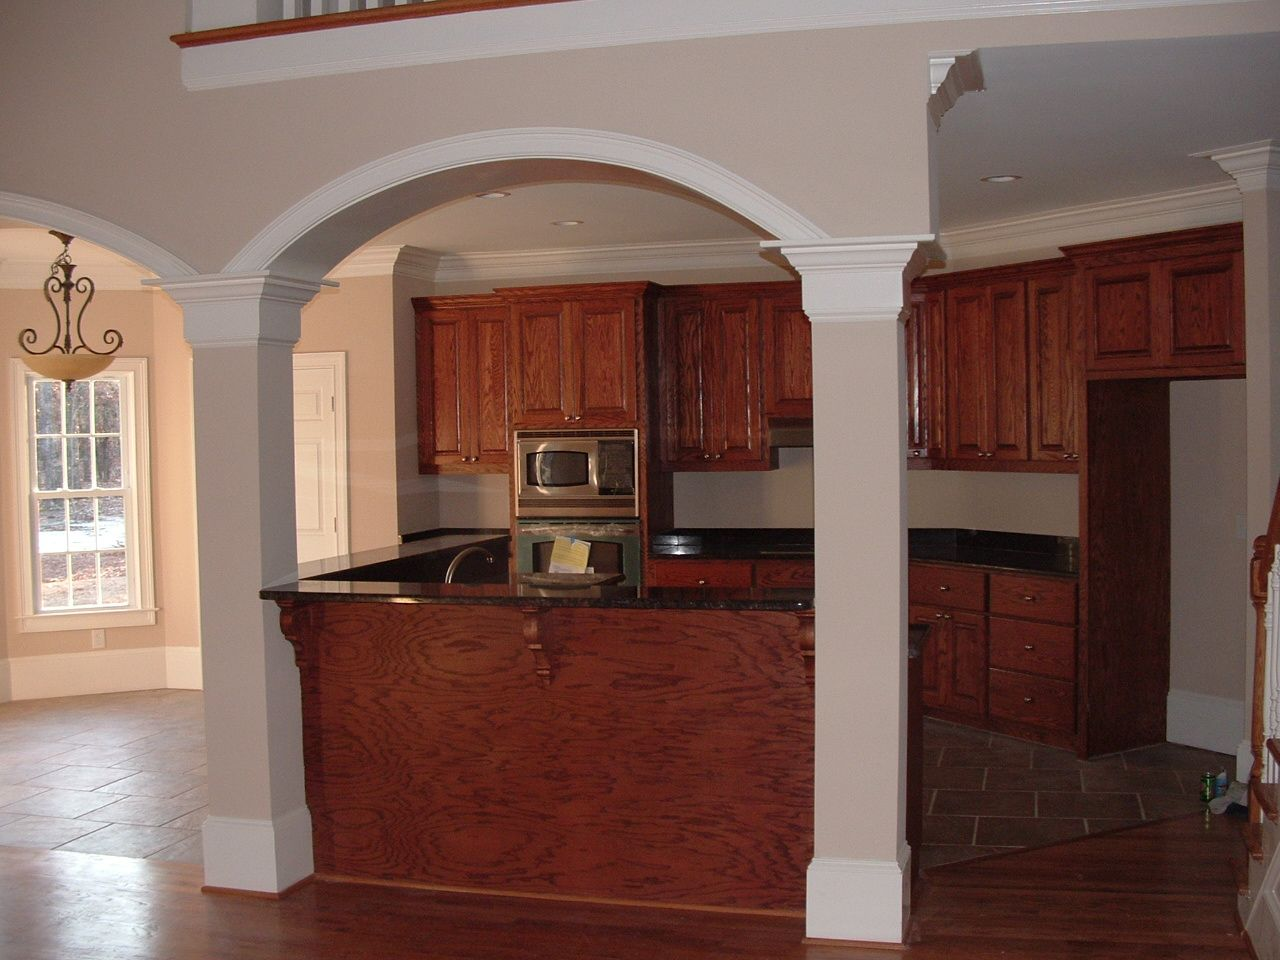 KITCHEN CABINETS | Kitchen Cabinets Custom Built Prefab Cabinets Cabinet  Design ...OPEN ARCH